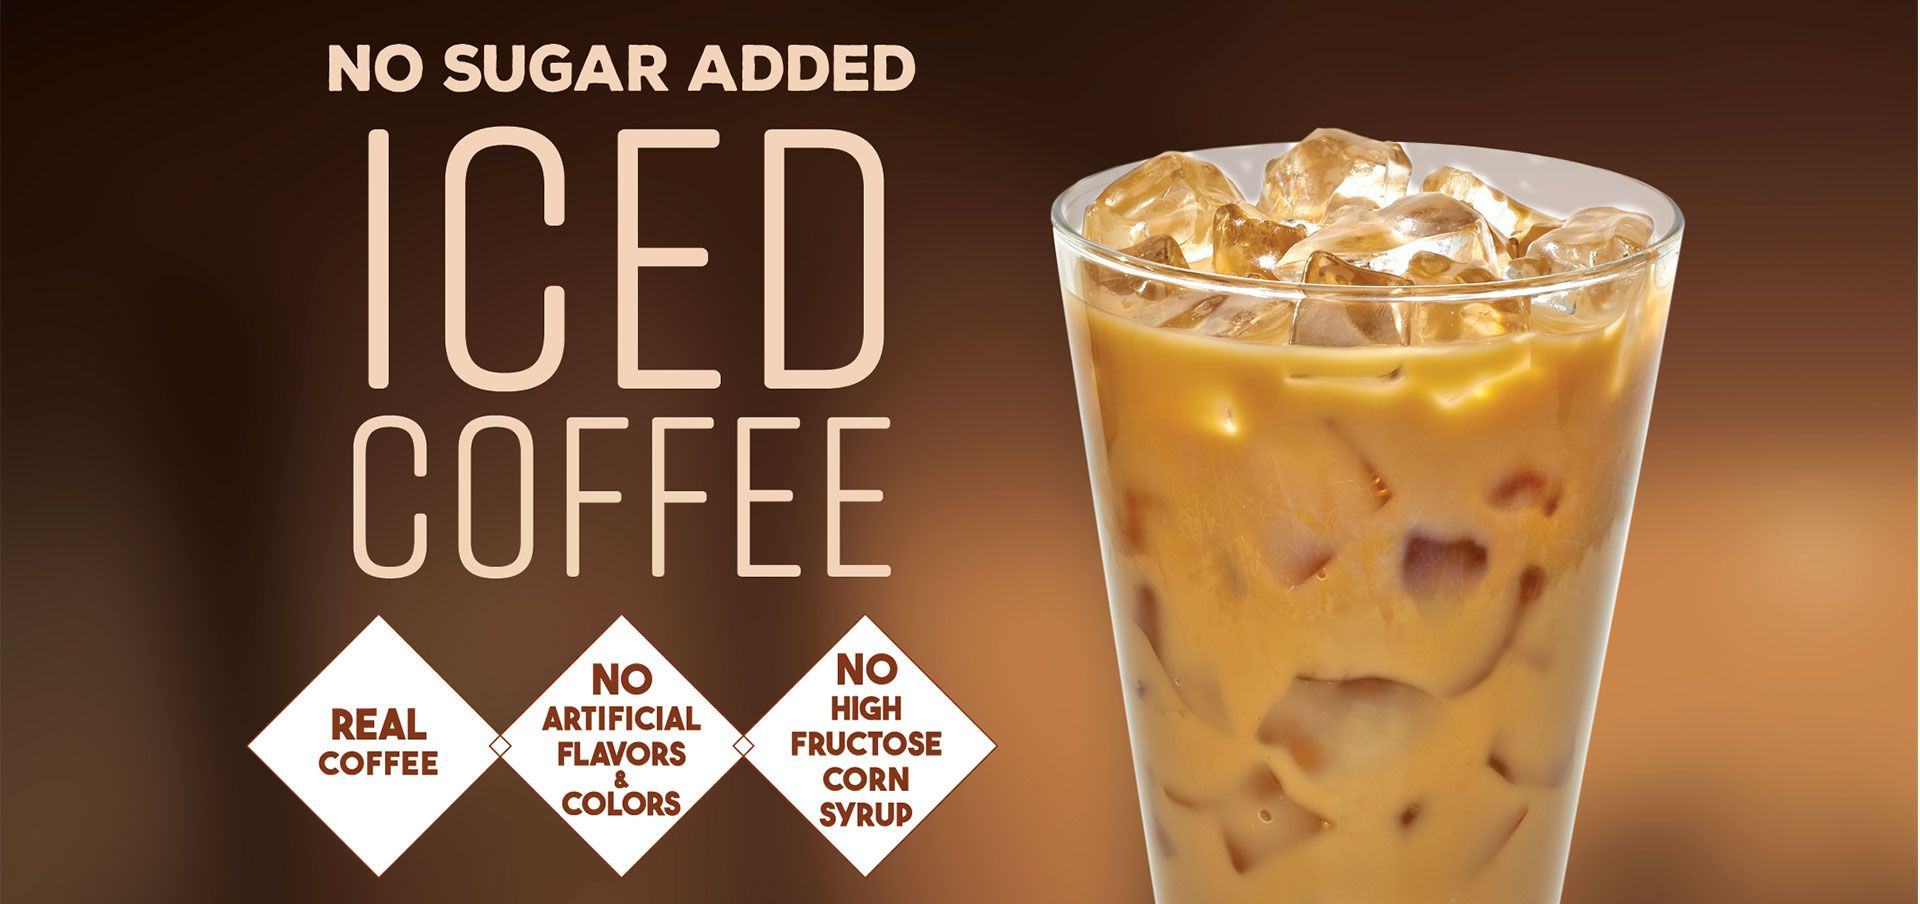 nsa iced coffee label image